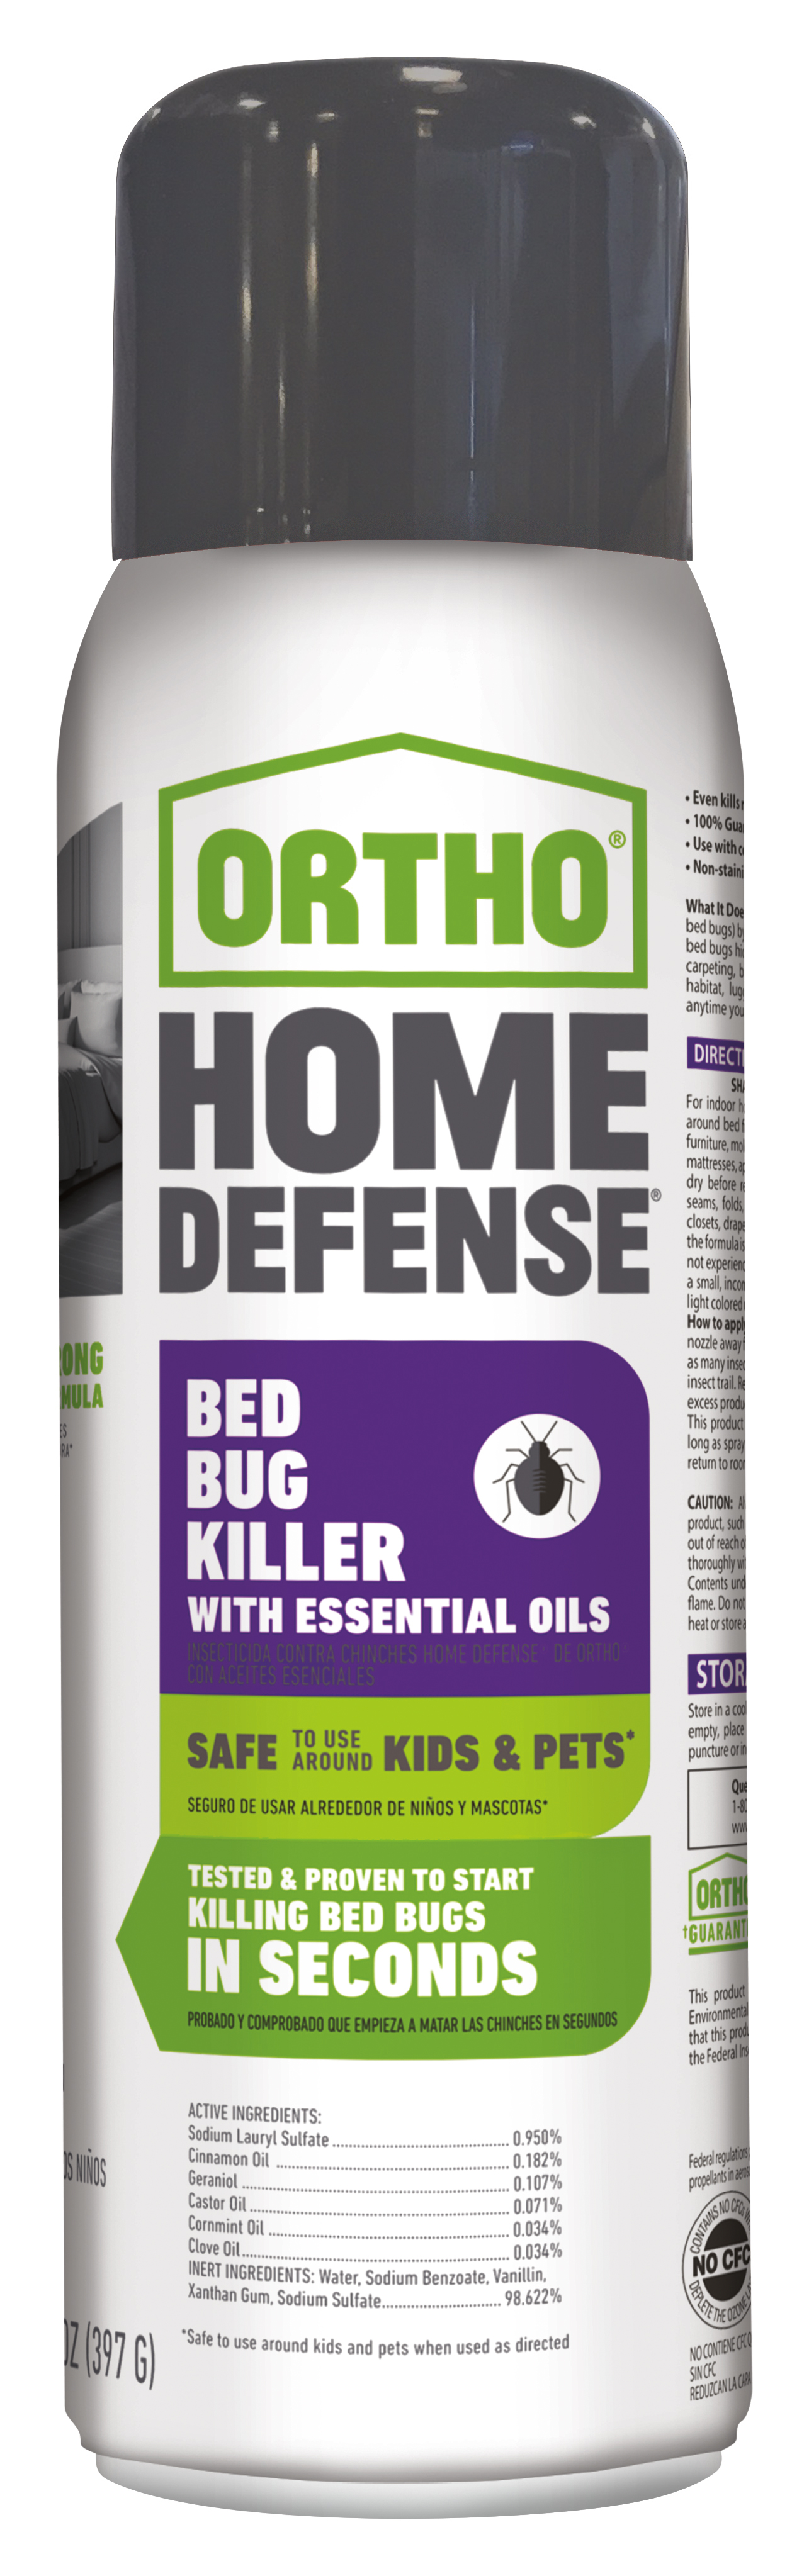 Ortho Home Defense Insect Killer Bed Bugs